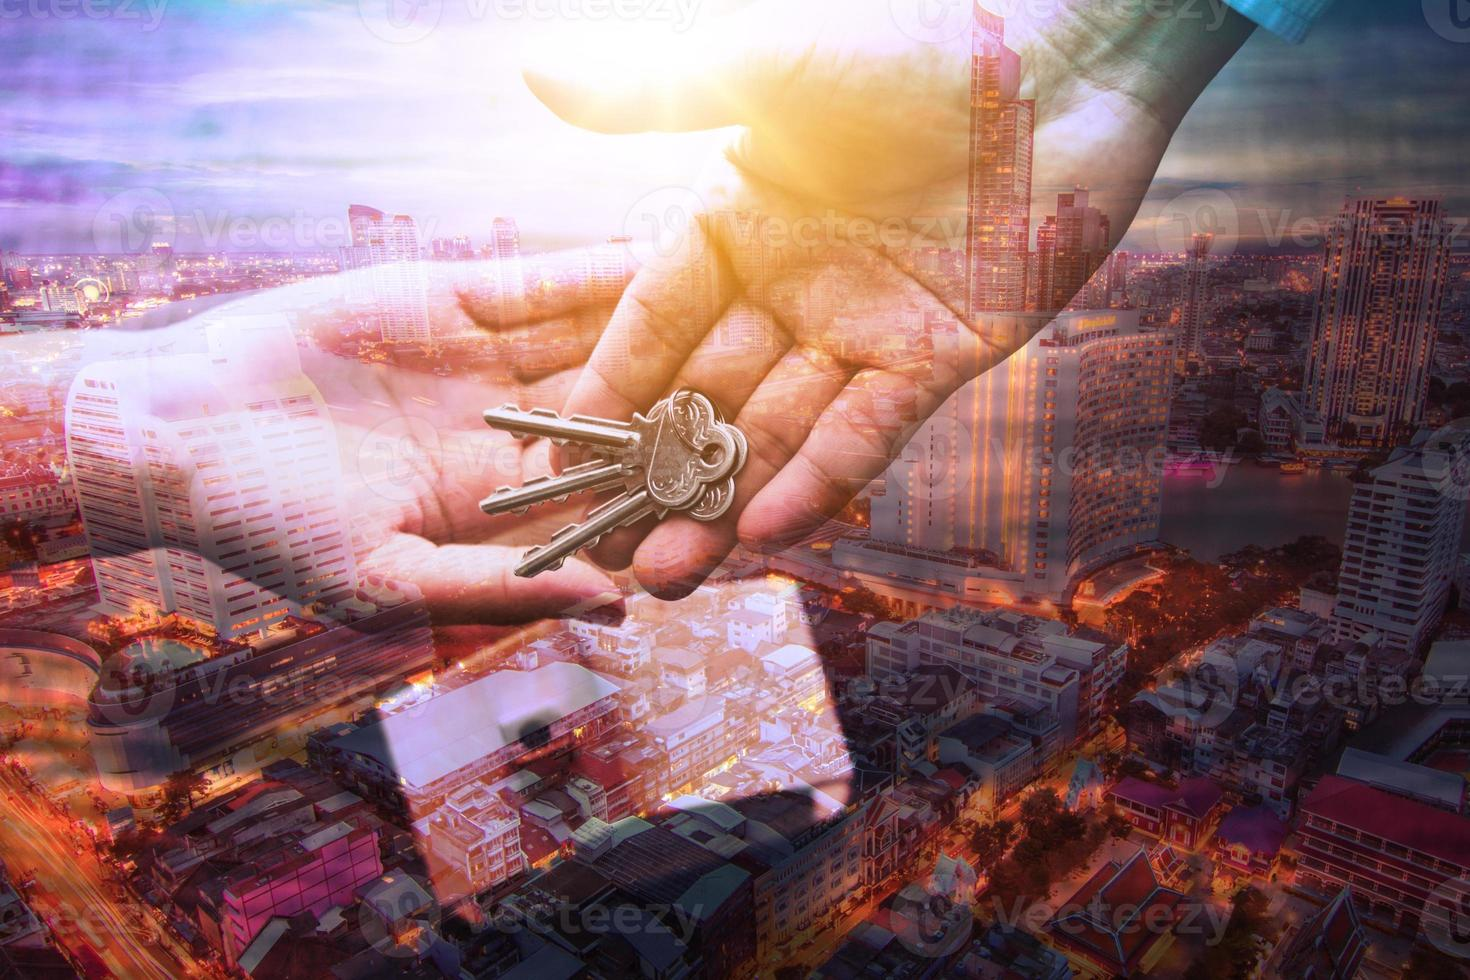 Hands passing keys with city overlay photo